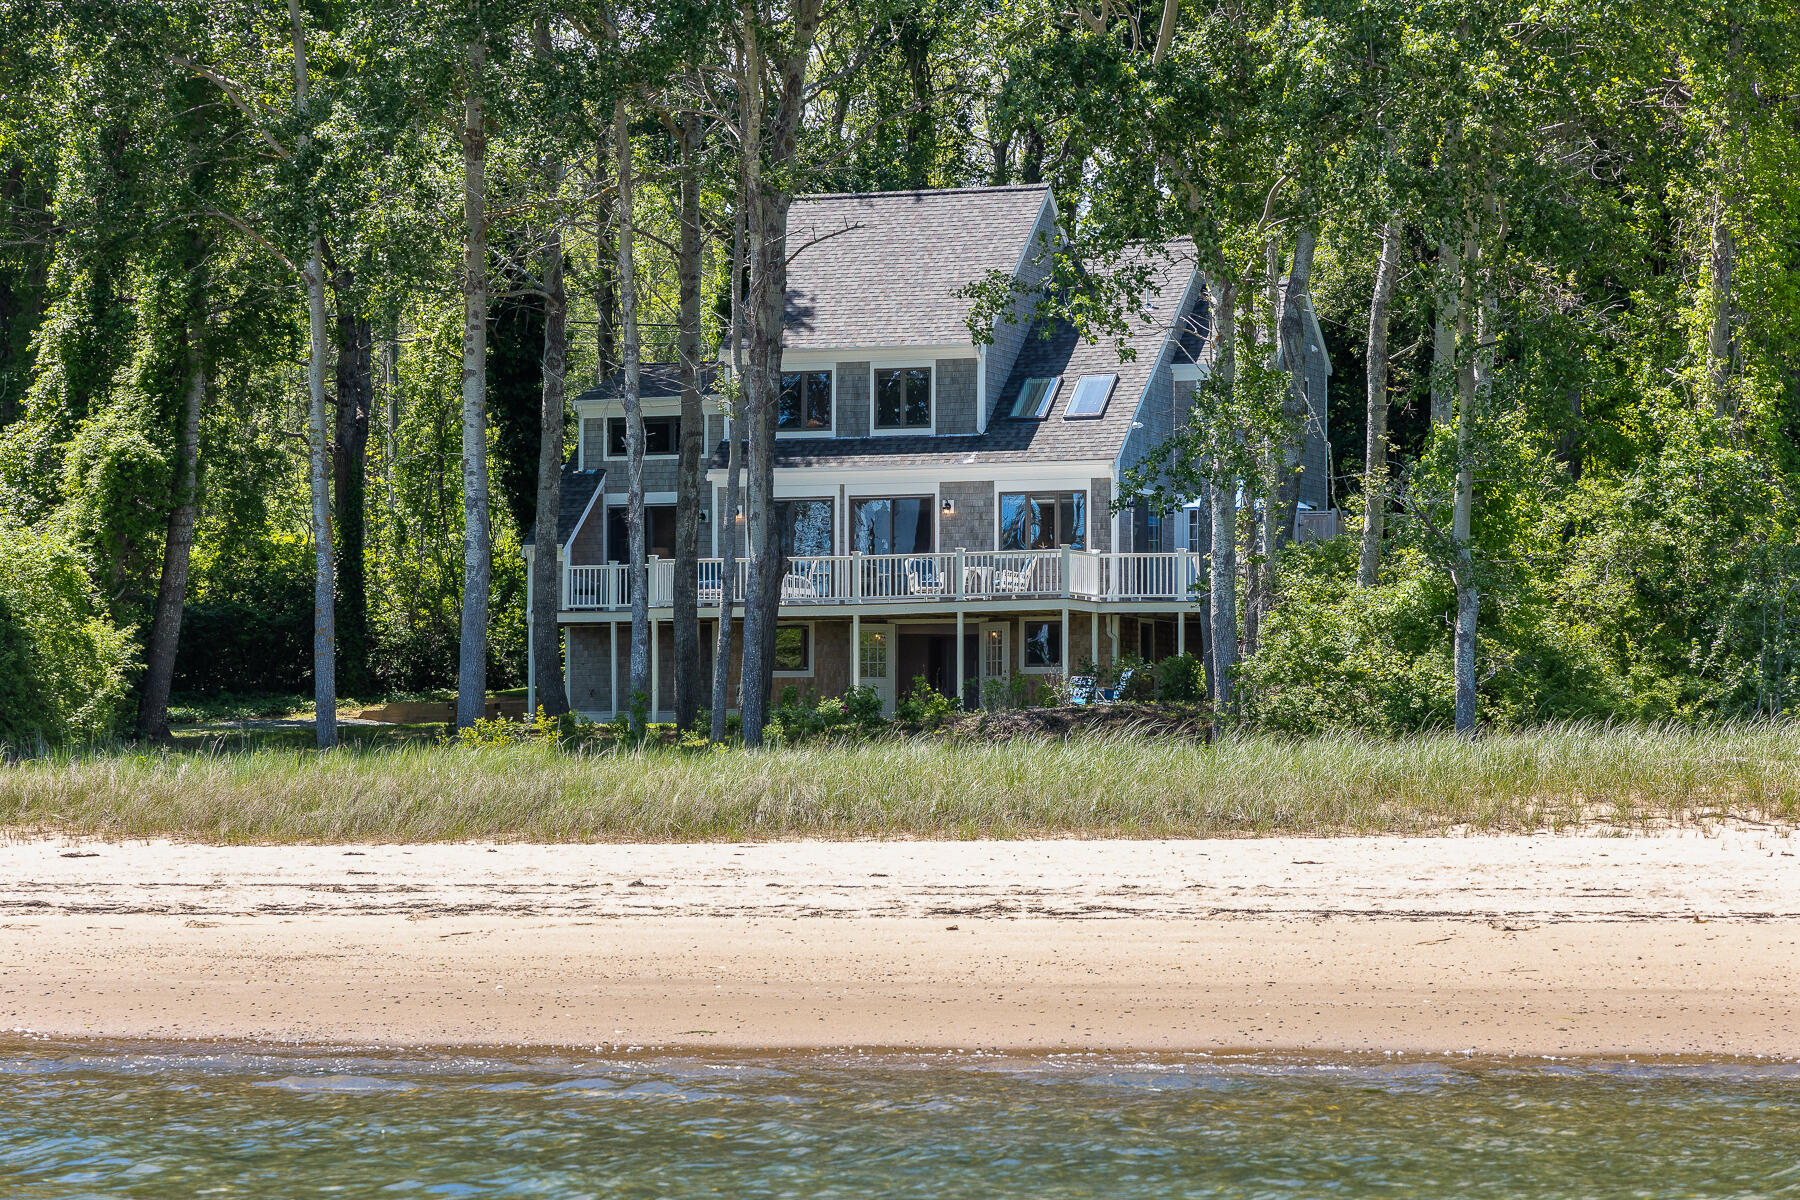 613 South Orleans Road, Orleans MA, 02653